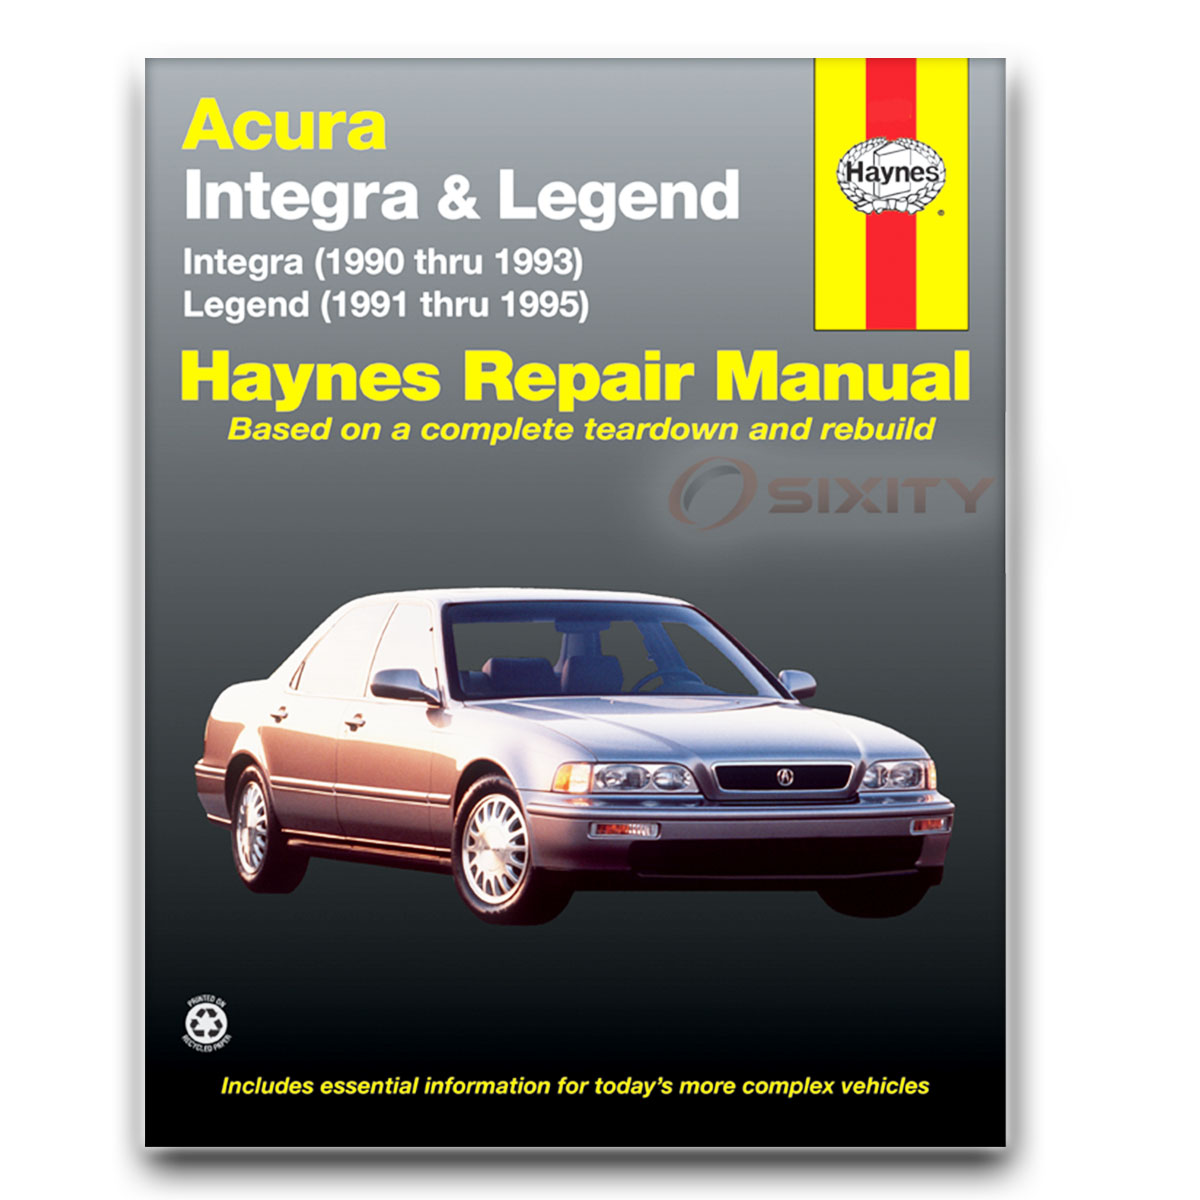 acura legend haynes repair manual l gs ls base se shop service rh ebay com 2017 Acura Legend 2017 Acura Legend